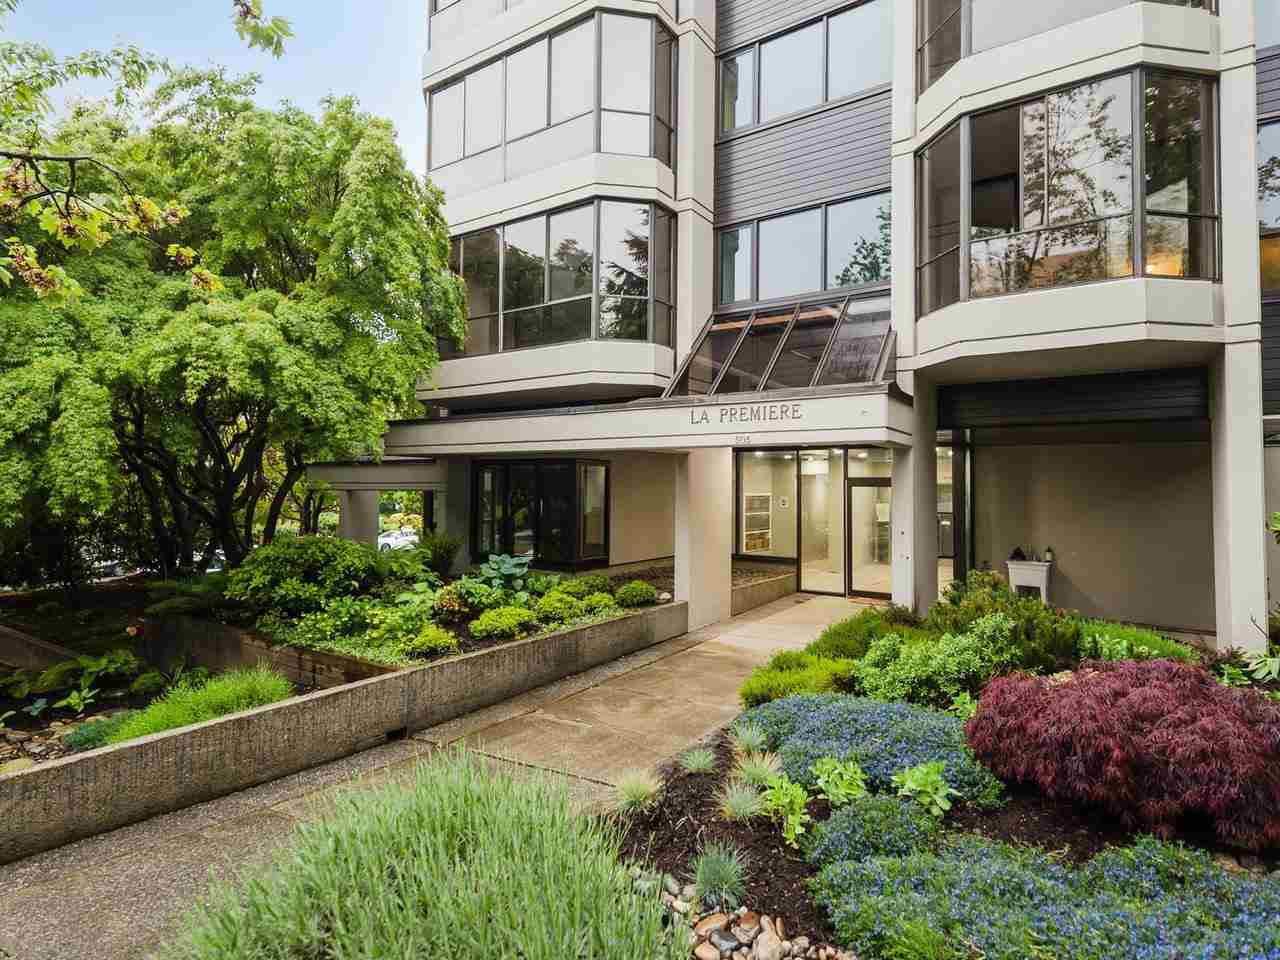 203 505 LONSDALE AVENUE - Lower Lonsdale Apartment/Condo for sale, 2 Bedrooms (R2576011) - #2